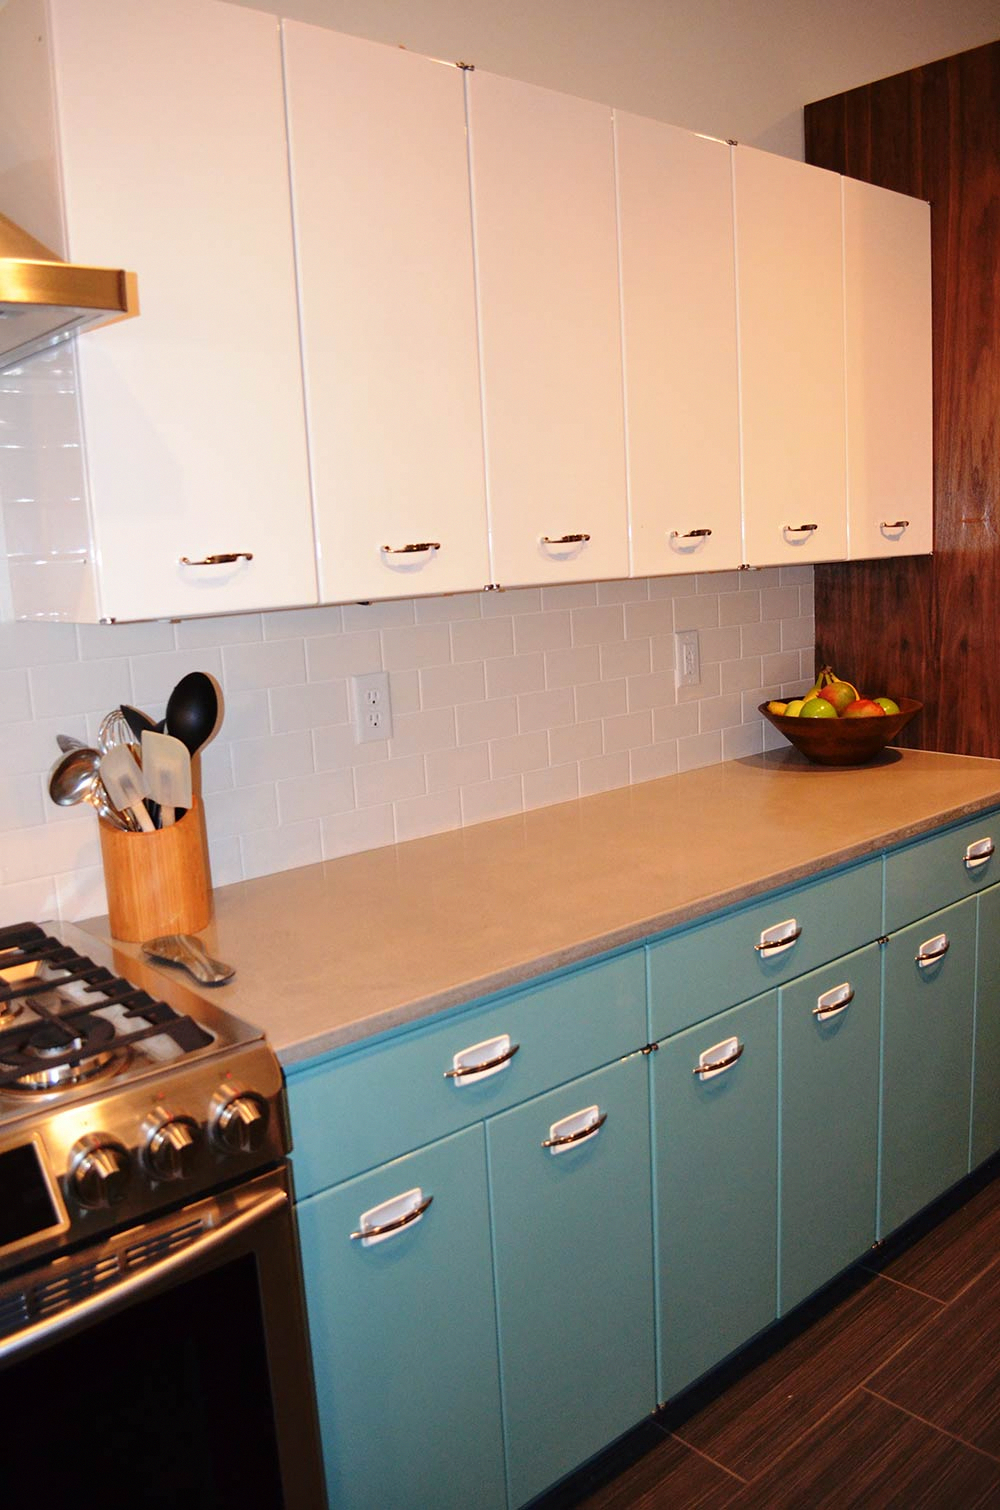 This Kind Of Photo Is Truly A Formidable Style Principle Refinishingkitchencabinet In 2020 Aluminum Kitchen Cabinets Vintage Kitchen Cabinets Kitchen Cabinet Remodel